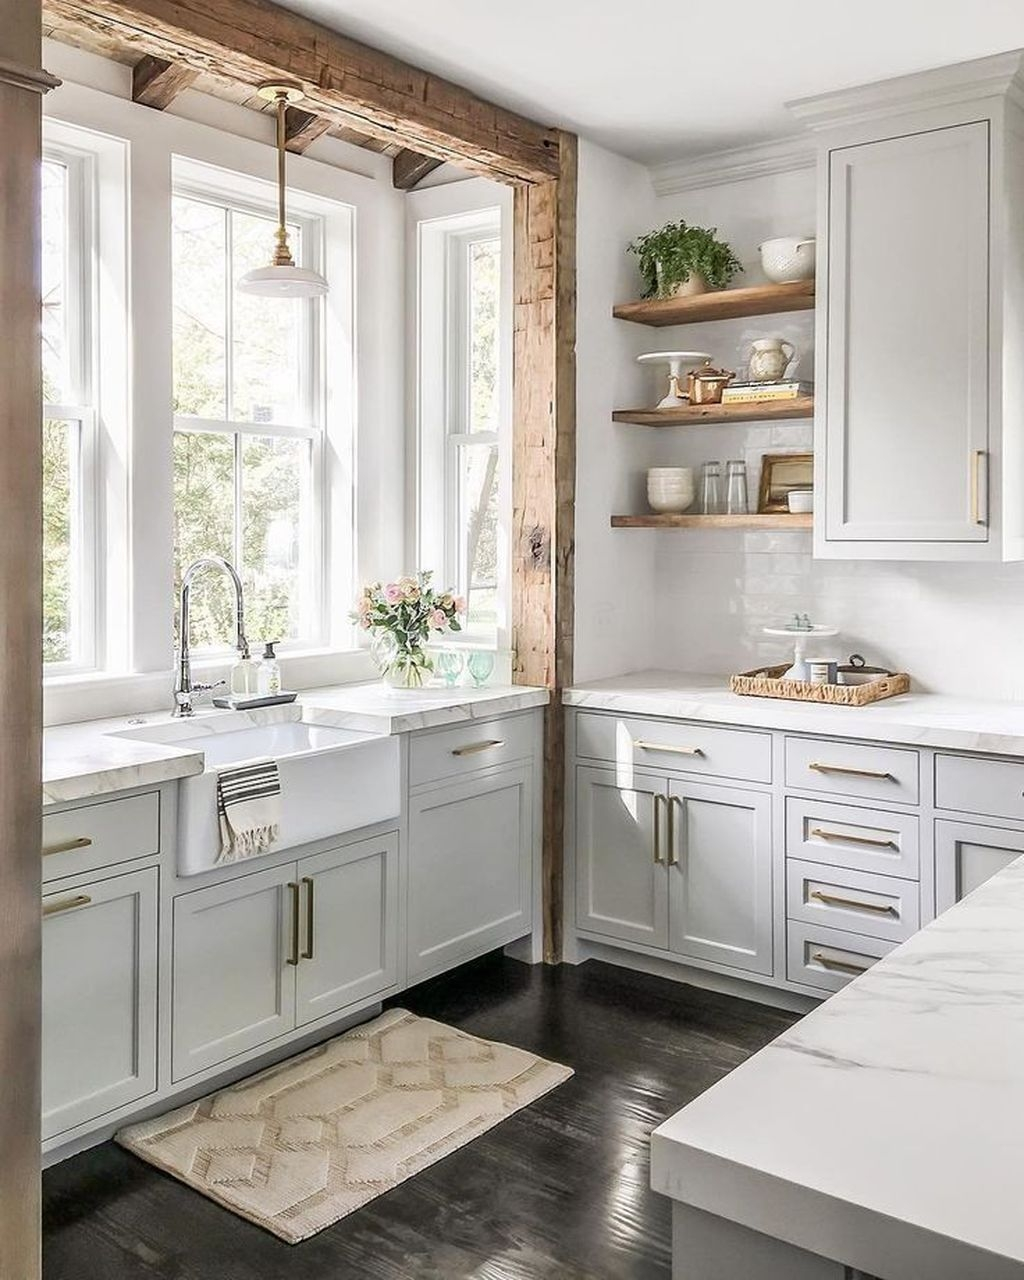 Totally Inspiring Small Kitchen Design Ideas For Your Small Home 37